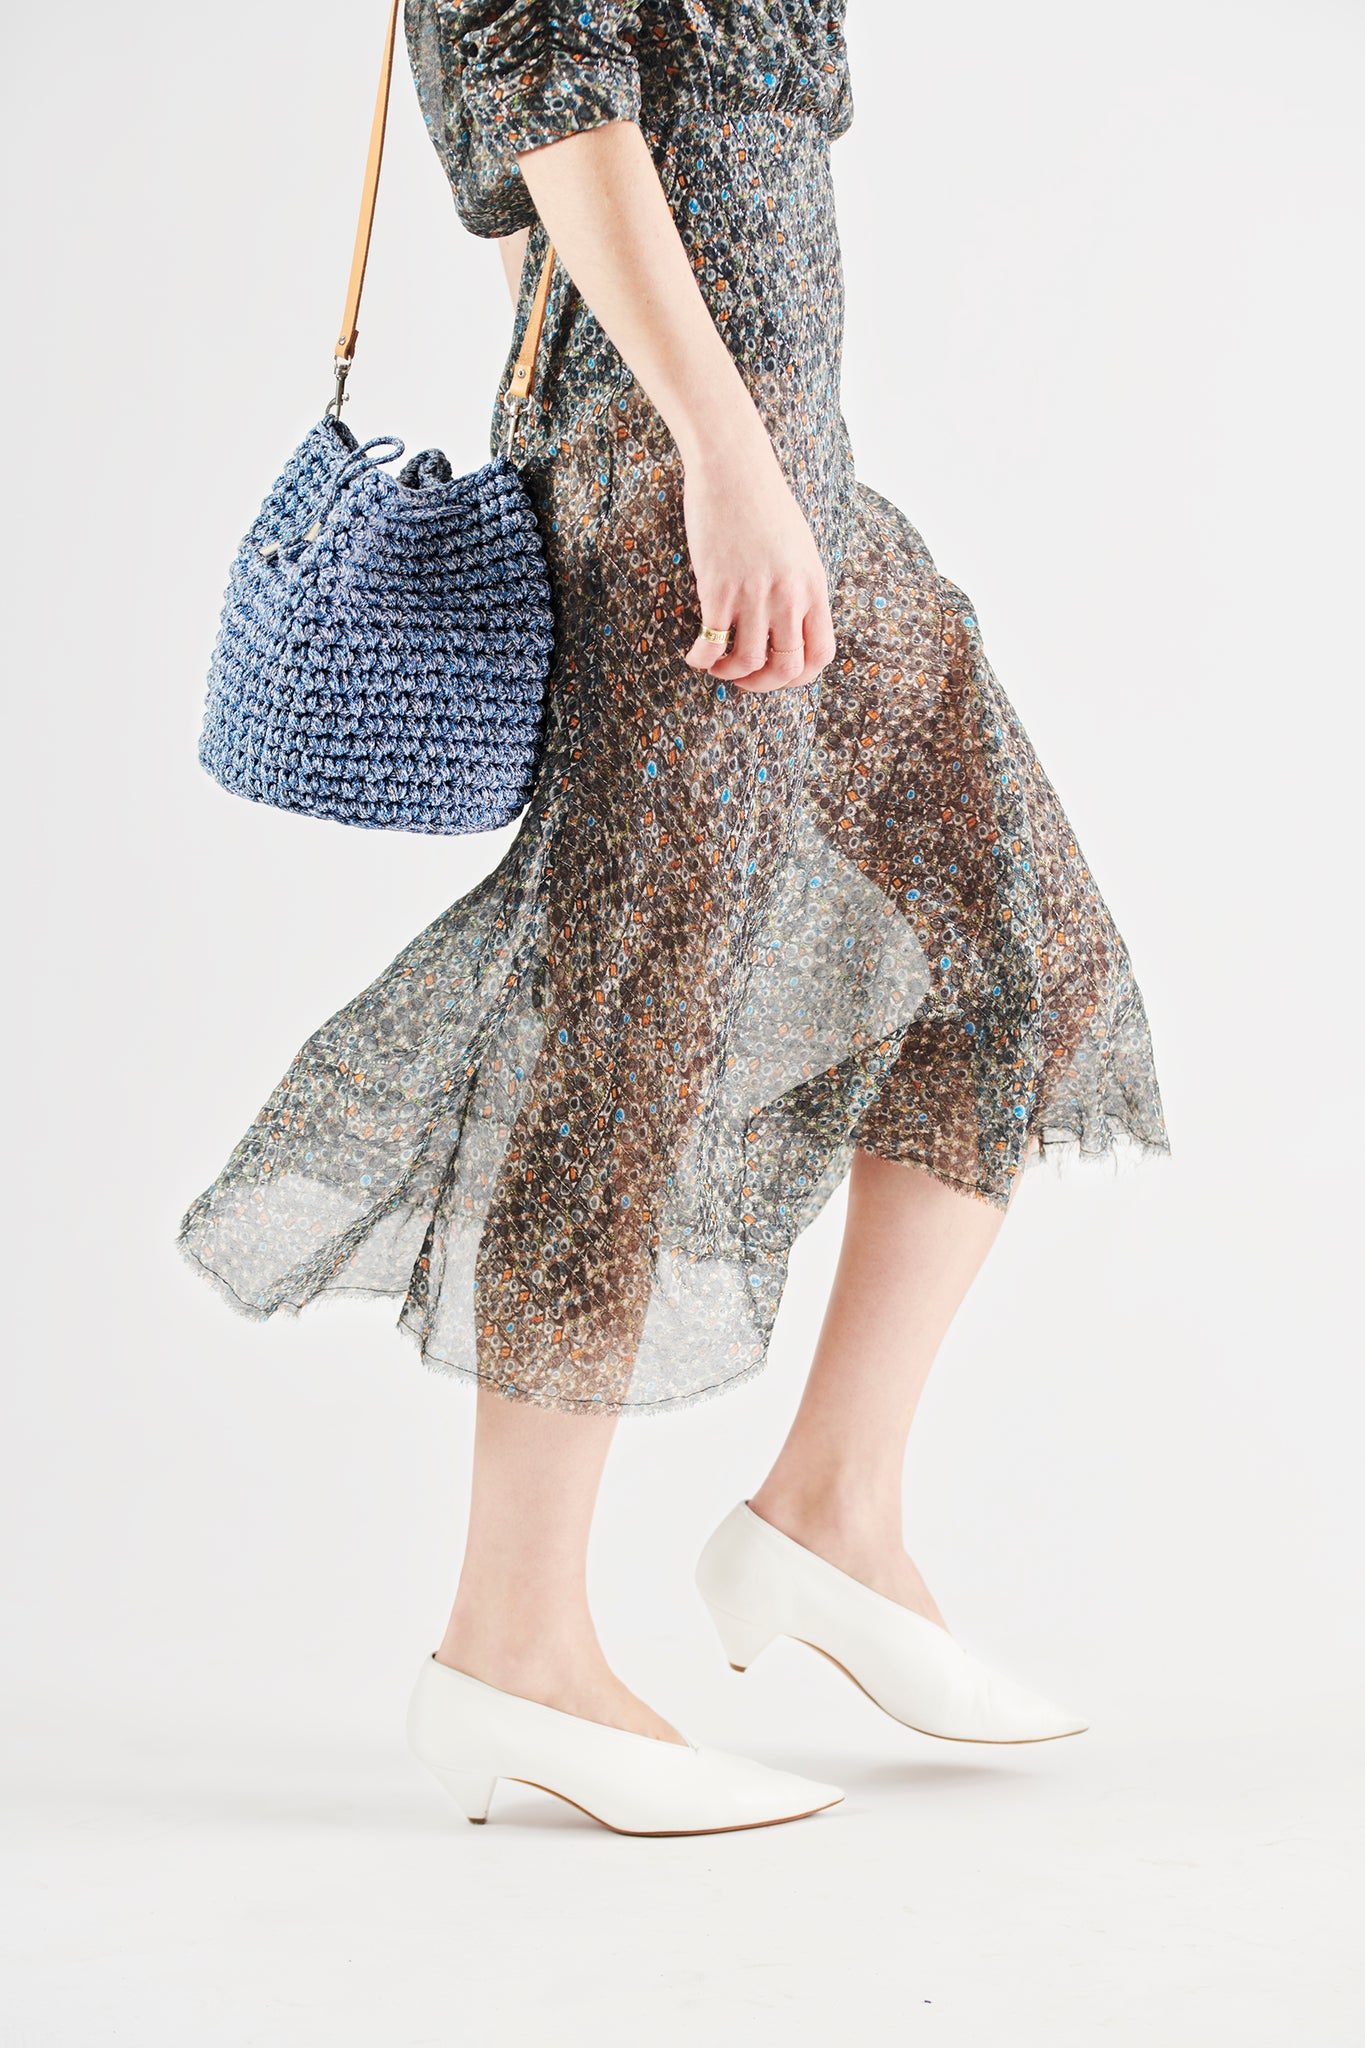 Crochet Kit Contemporary Jeans Color Bucket Bag DIY